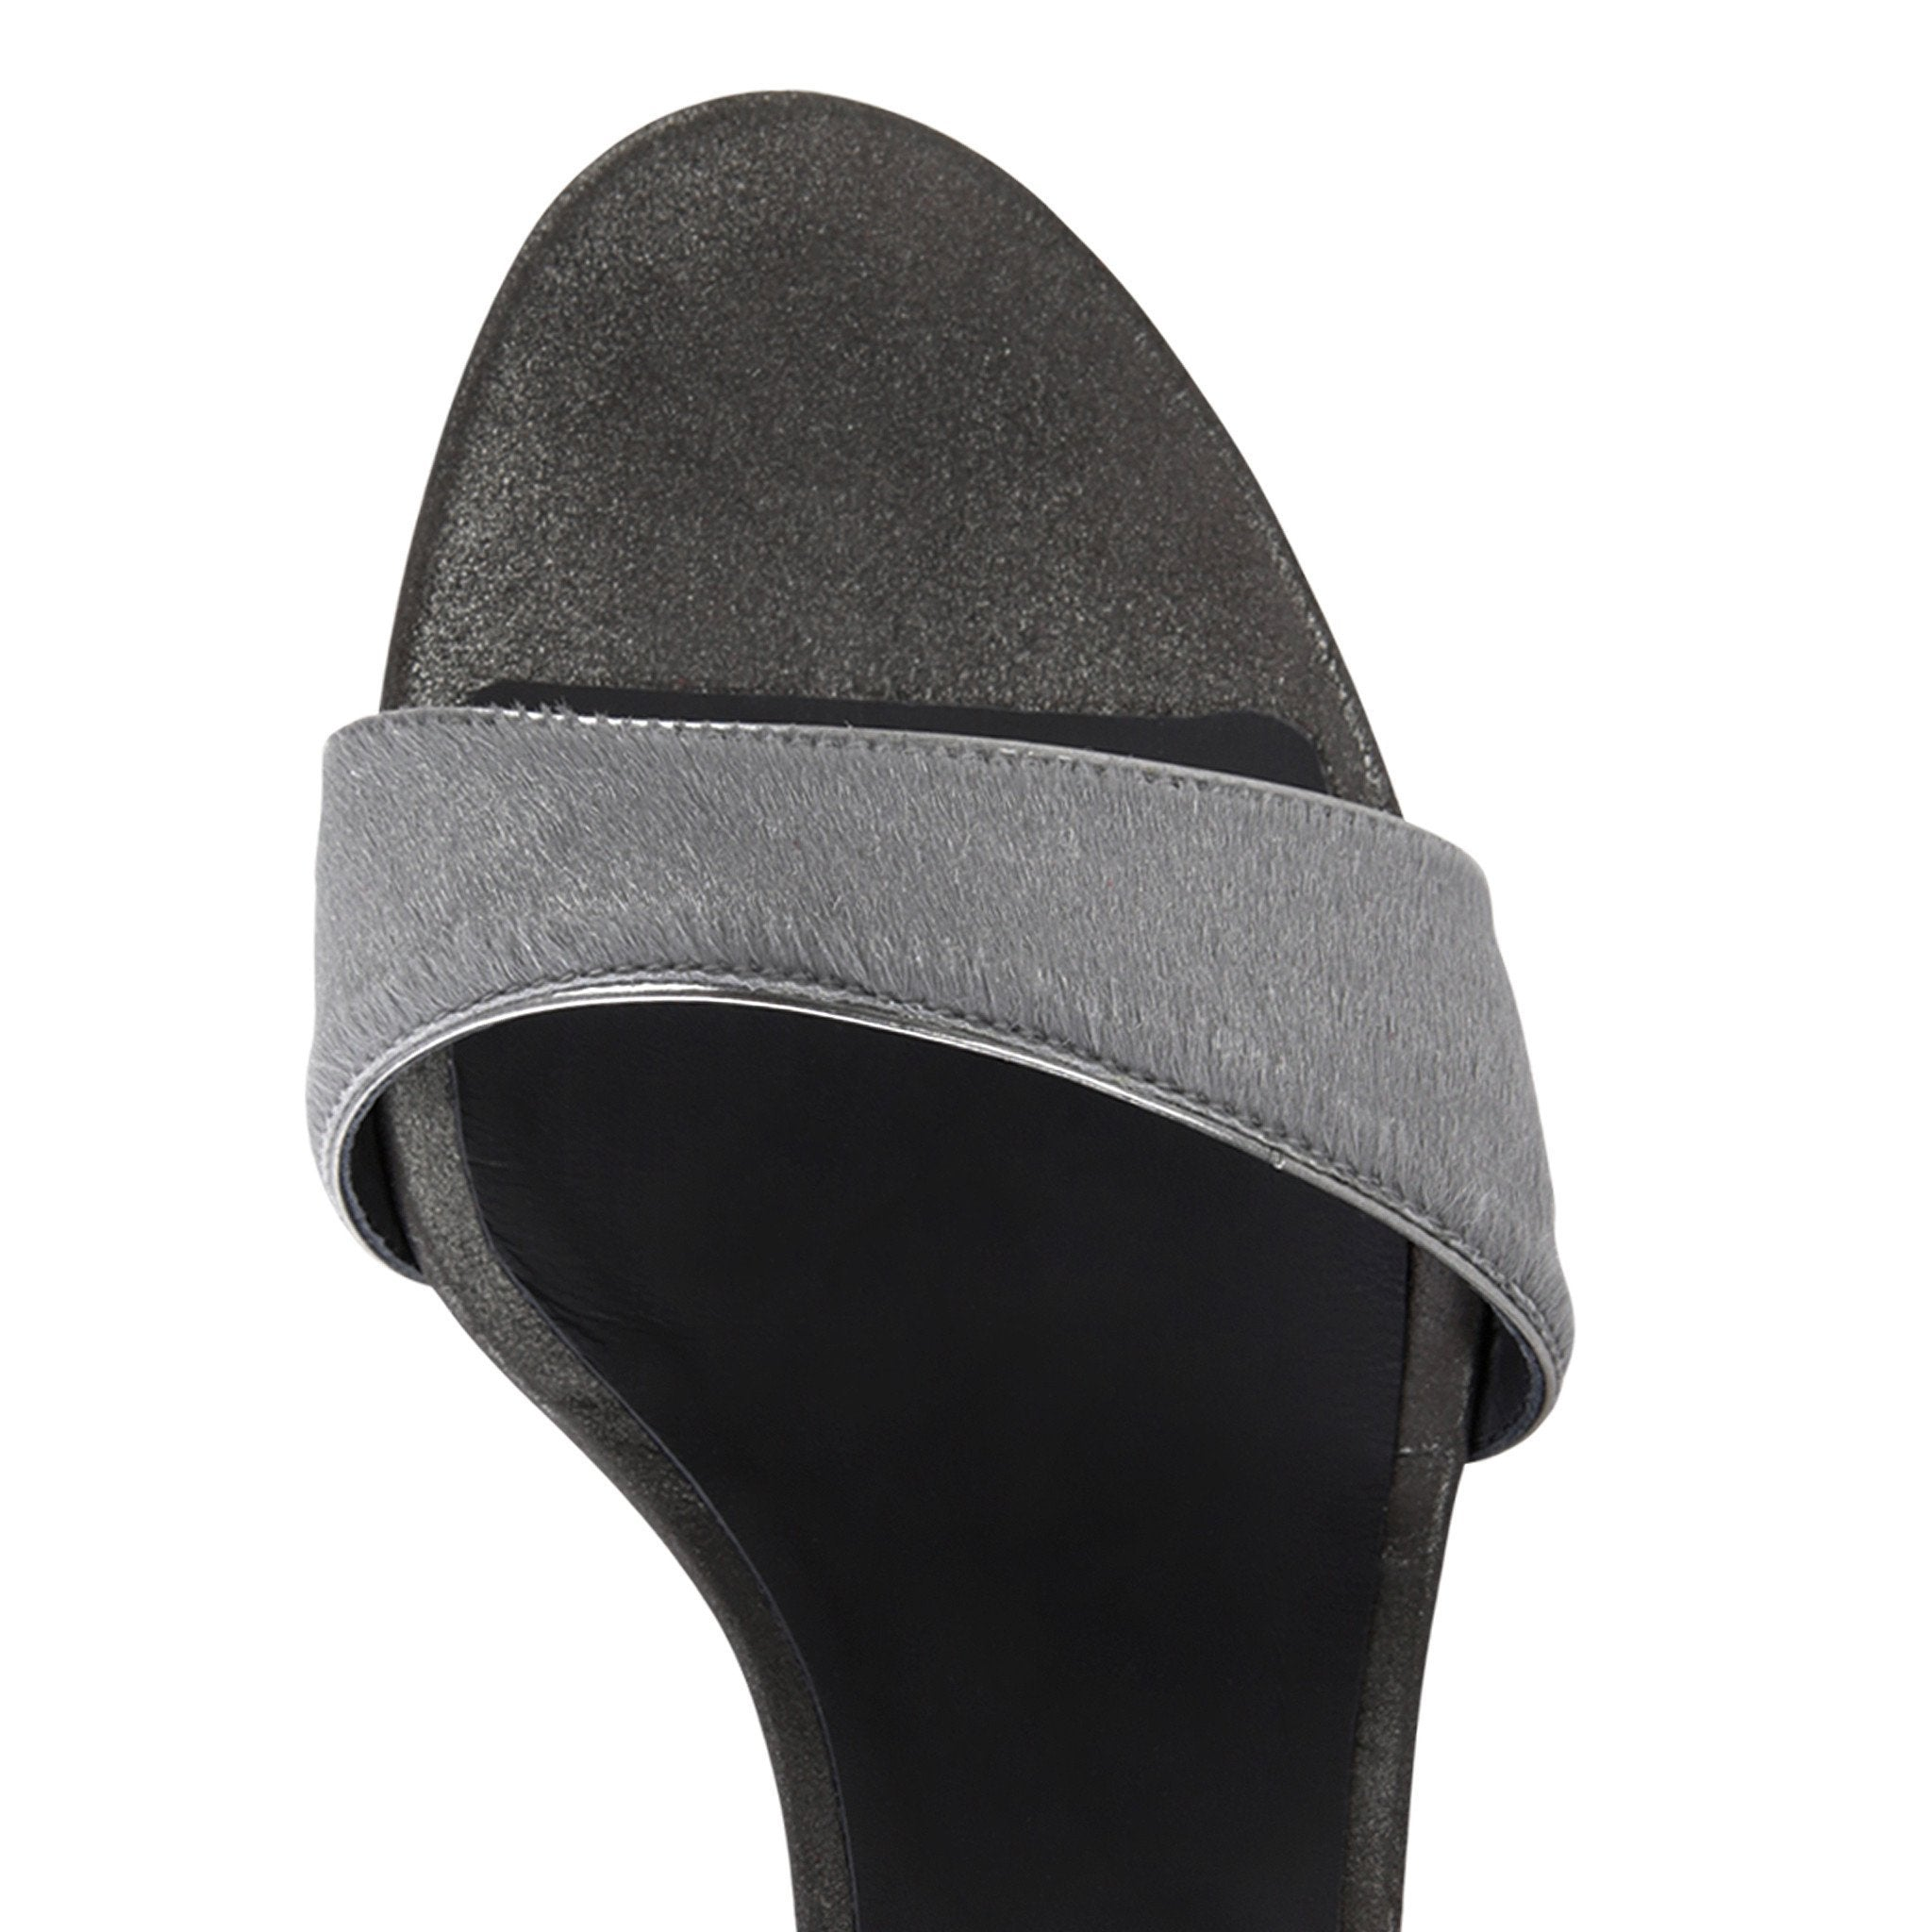 MODENA - Calf Hair Grey + Burma Anthracite, VIAJIYU - Women's Hand Made Sustainable Luxury Shoes. Made in Italy. Made to Order.